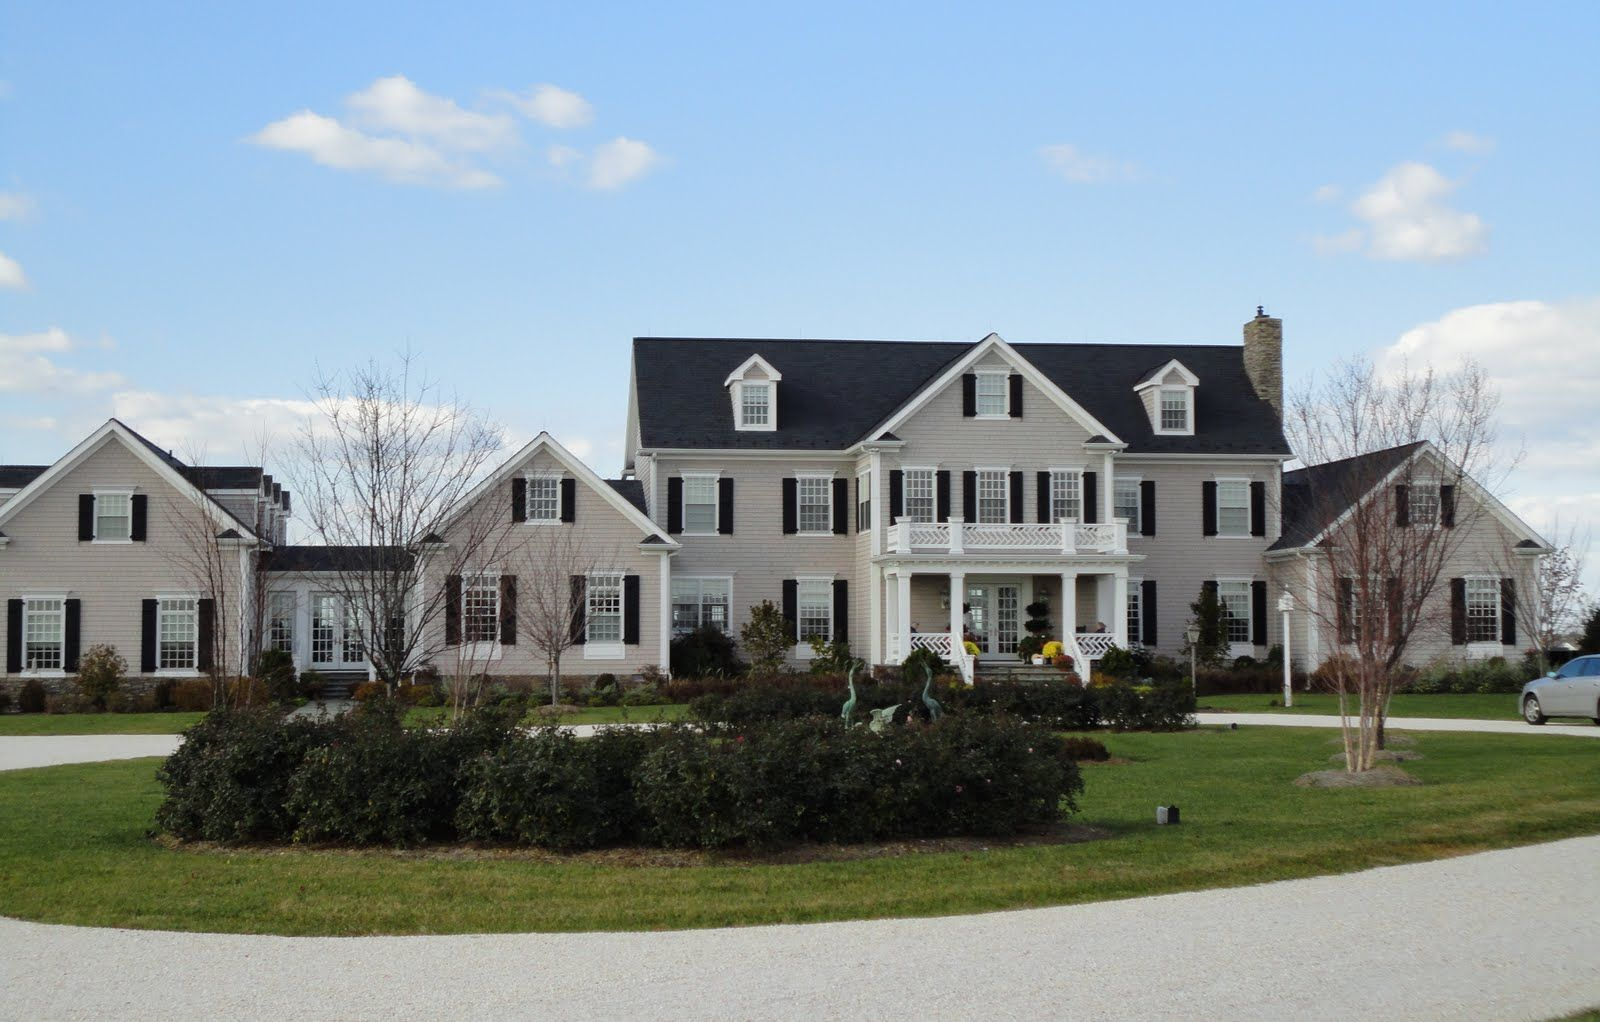 Excellent 17 Best Images About Exterior House Paint On Pinterest Stone Largest Home Design Picture Inspirations Pitcheantrous